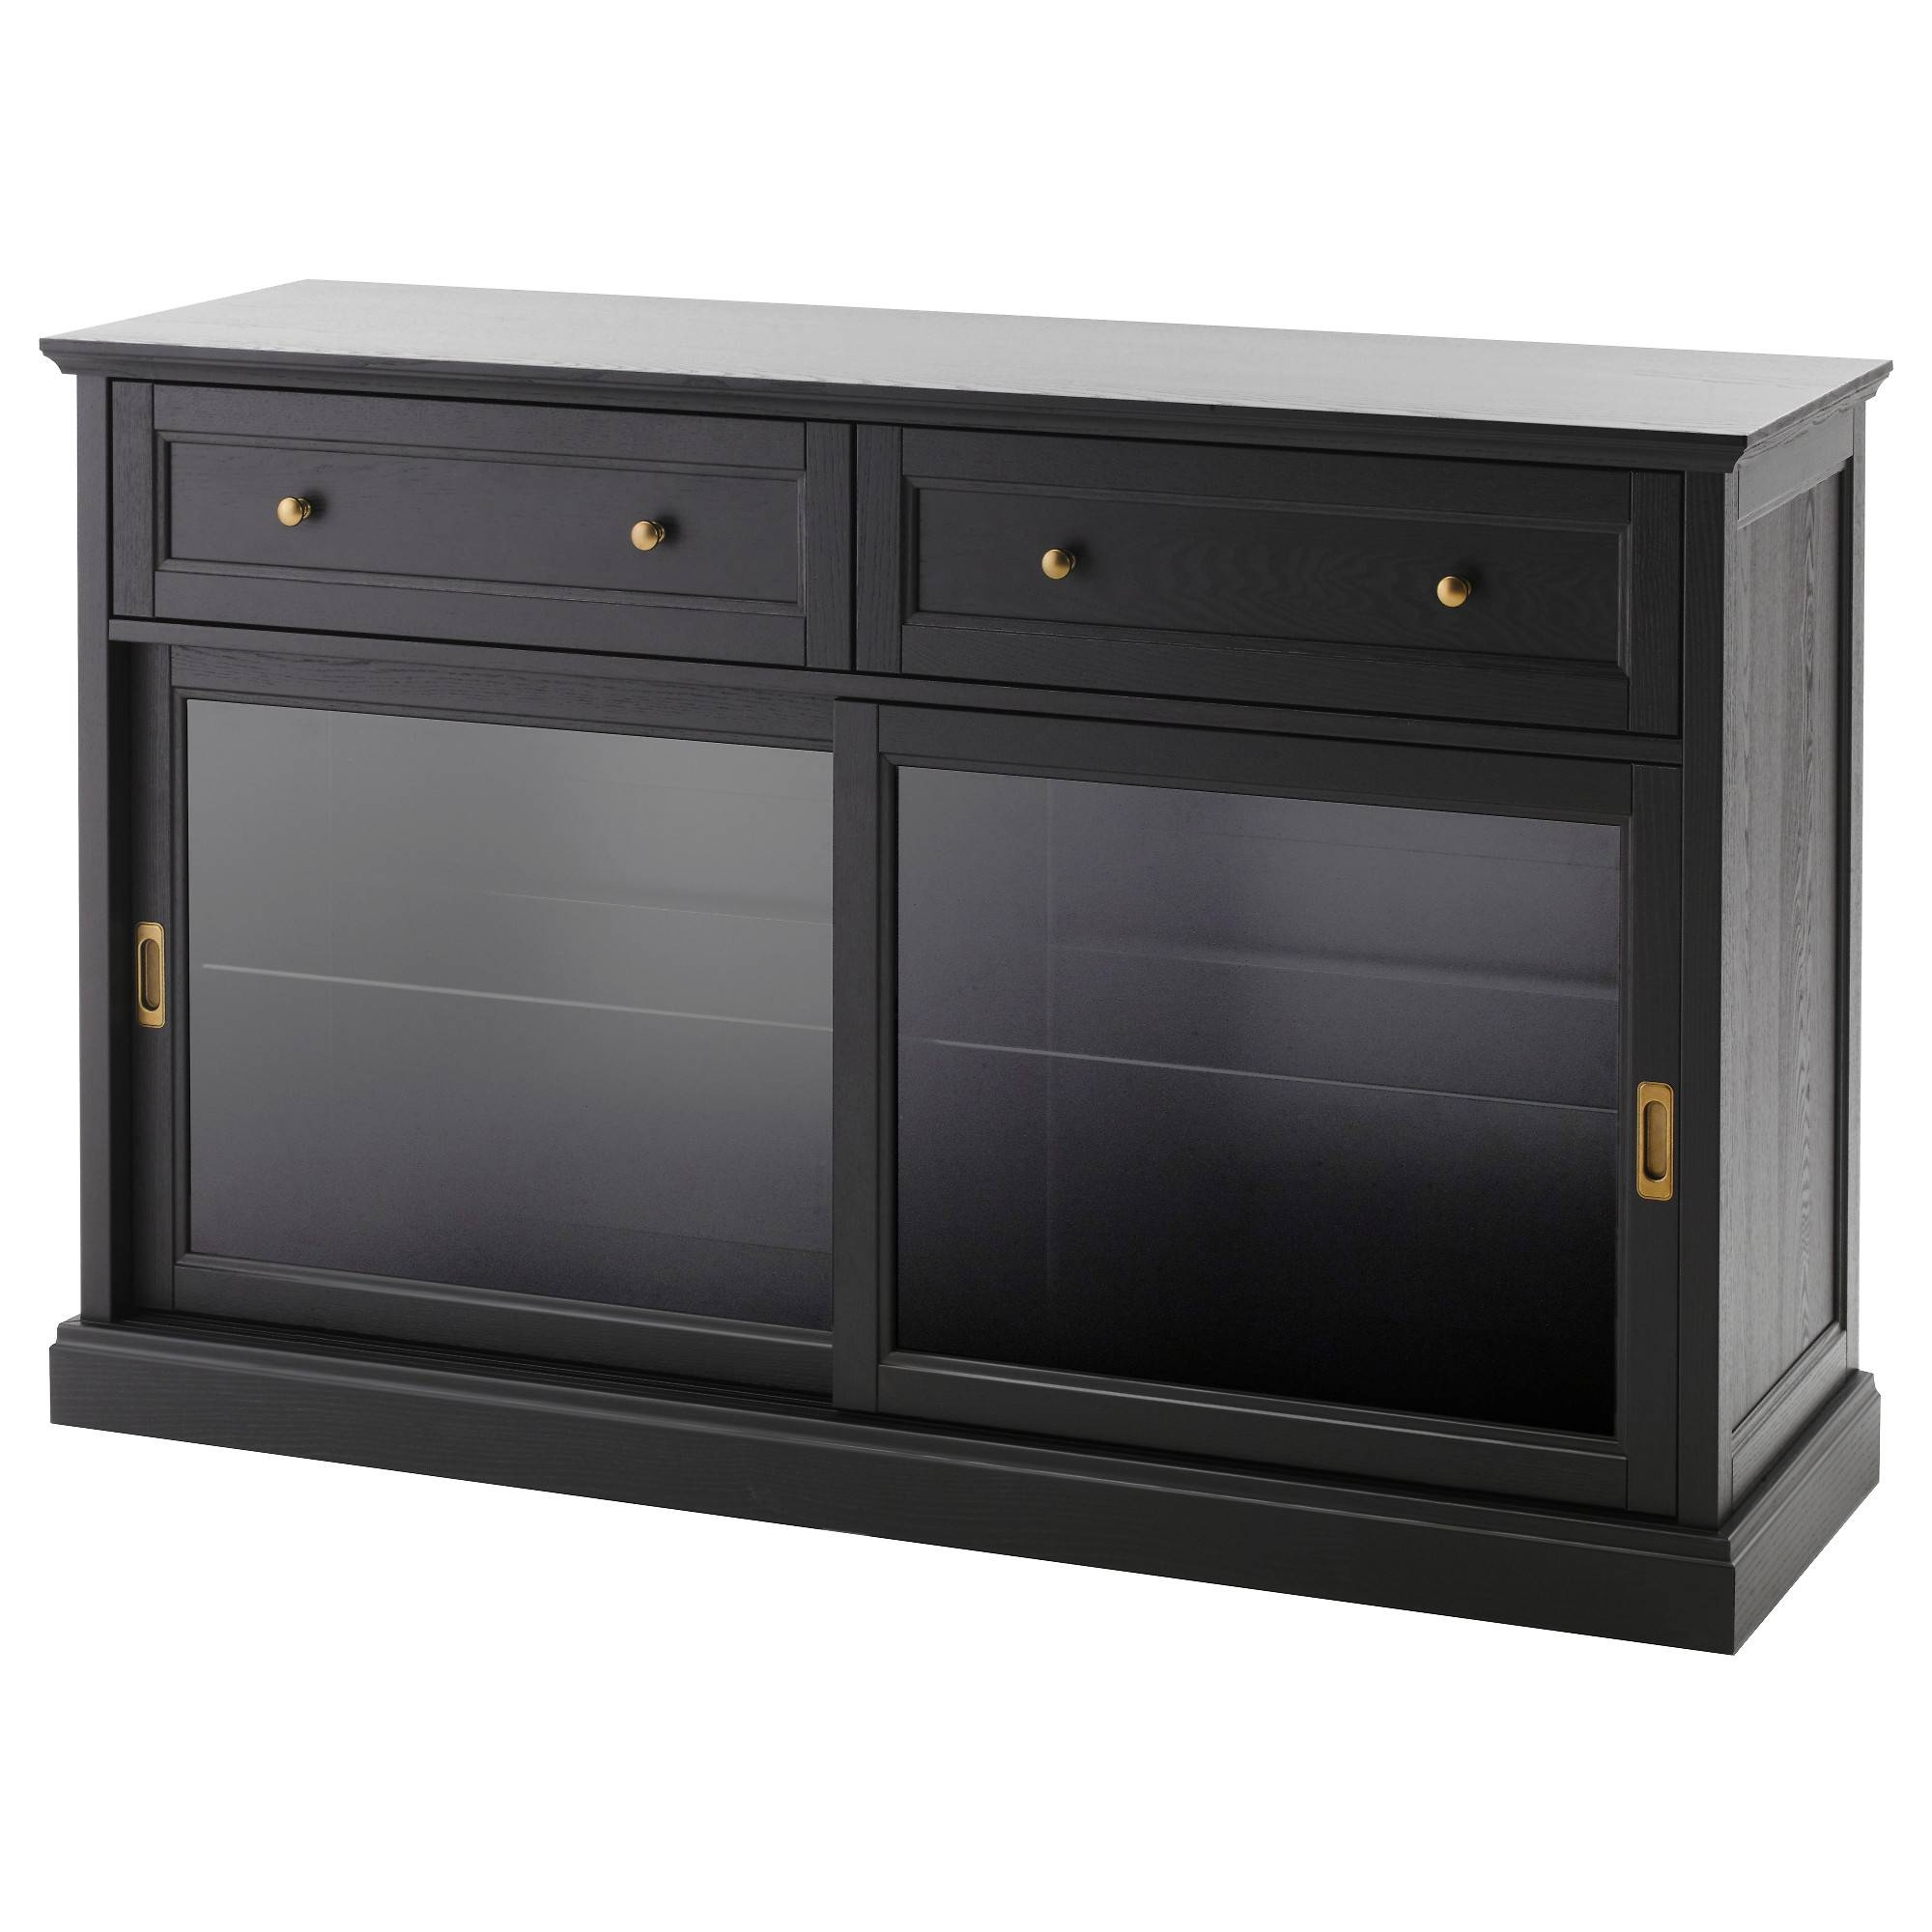 Buffet Tables & Sideboards - Ikea within Small Sideboard Cabinets (Image 3 of 30)